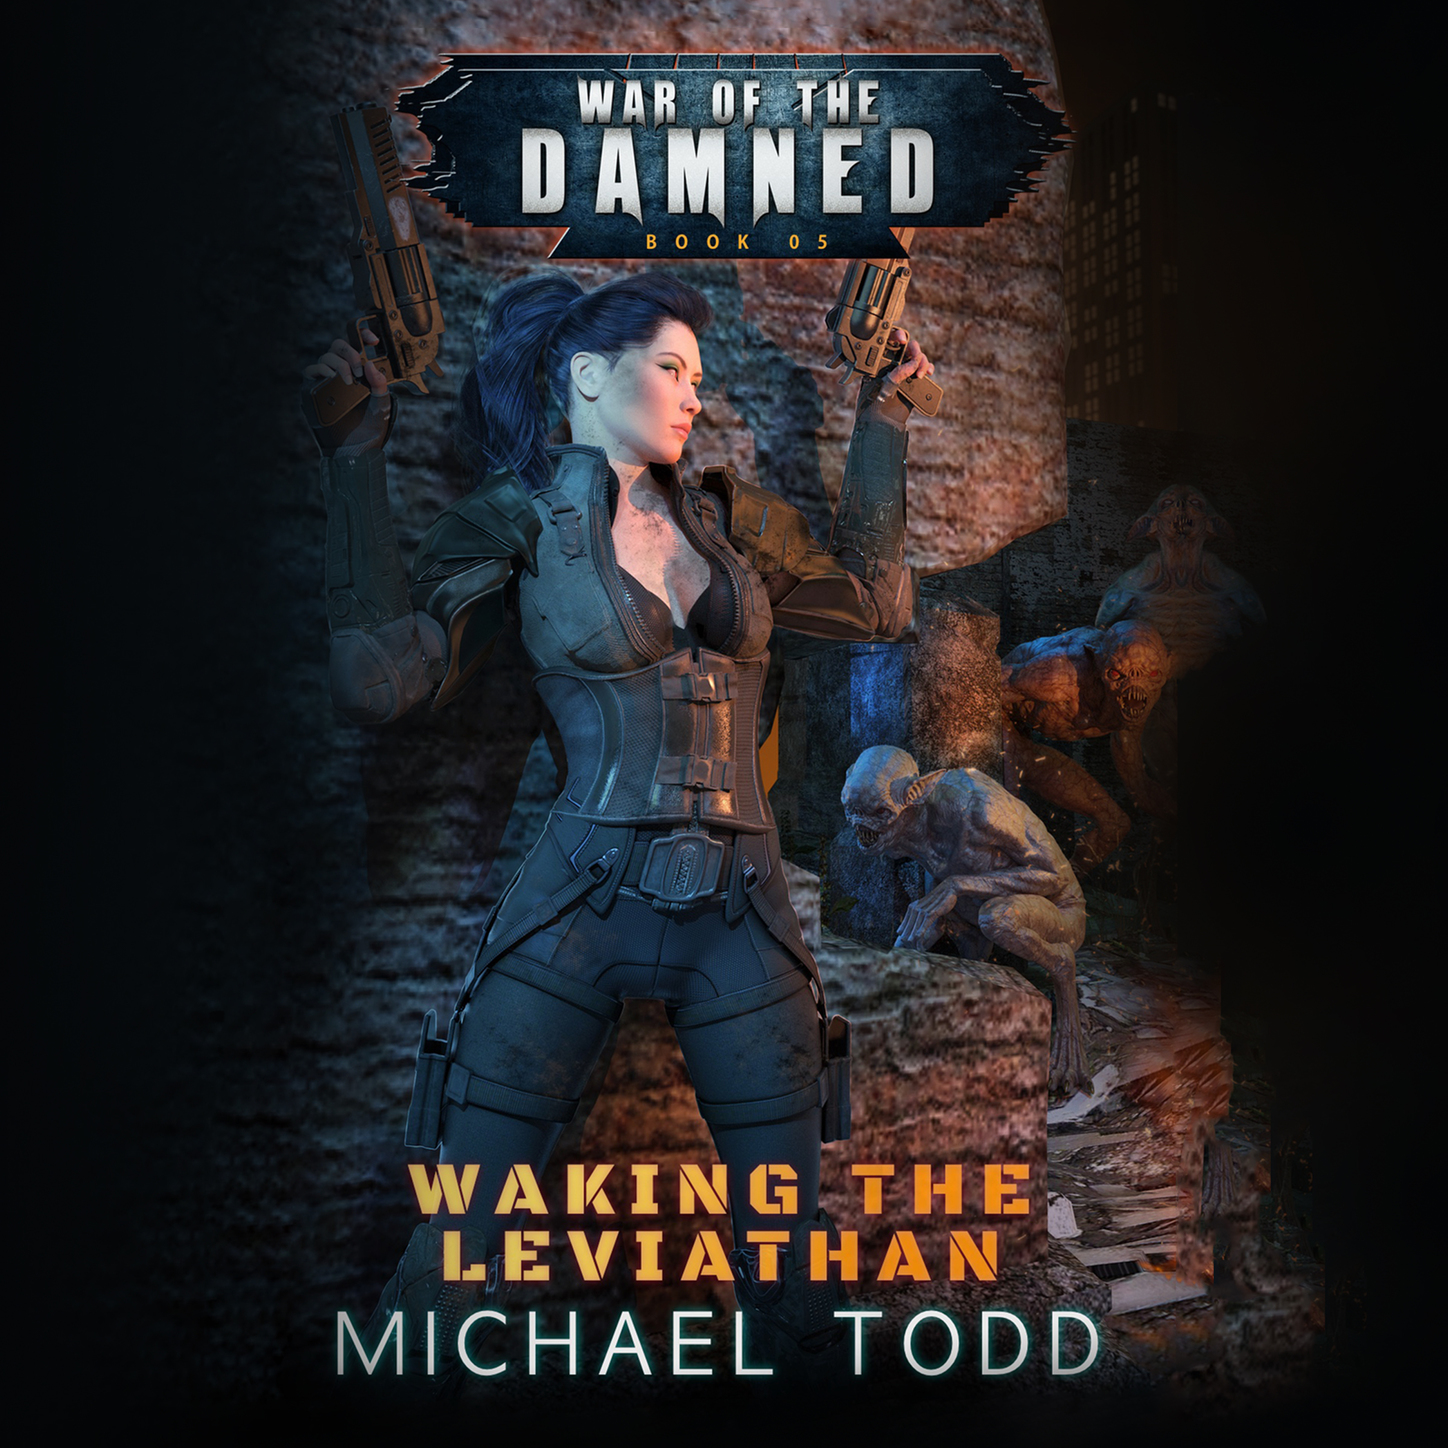 Laurie Starkey S. Waking the Leviathan - War of the Damned, Book 5 (Unabridged) waking beauty